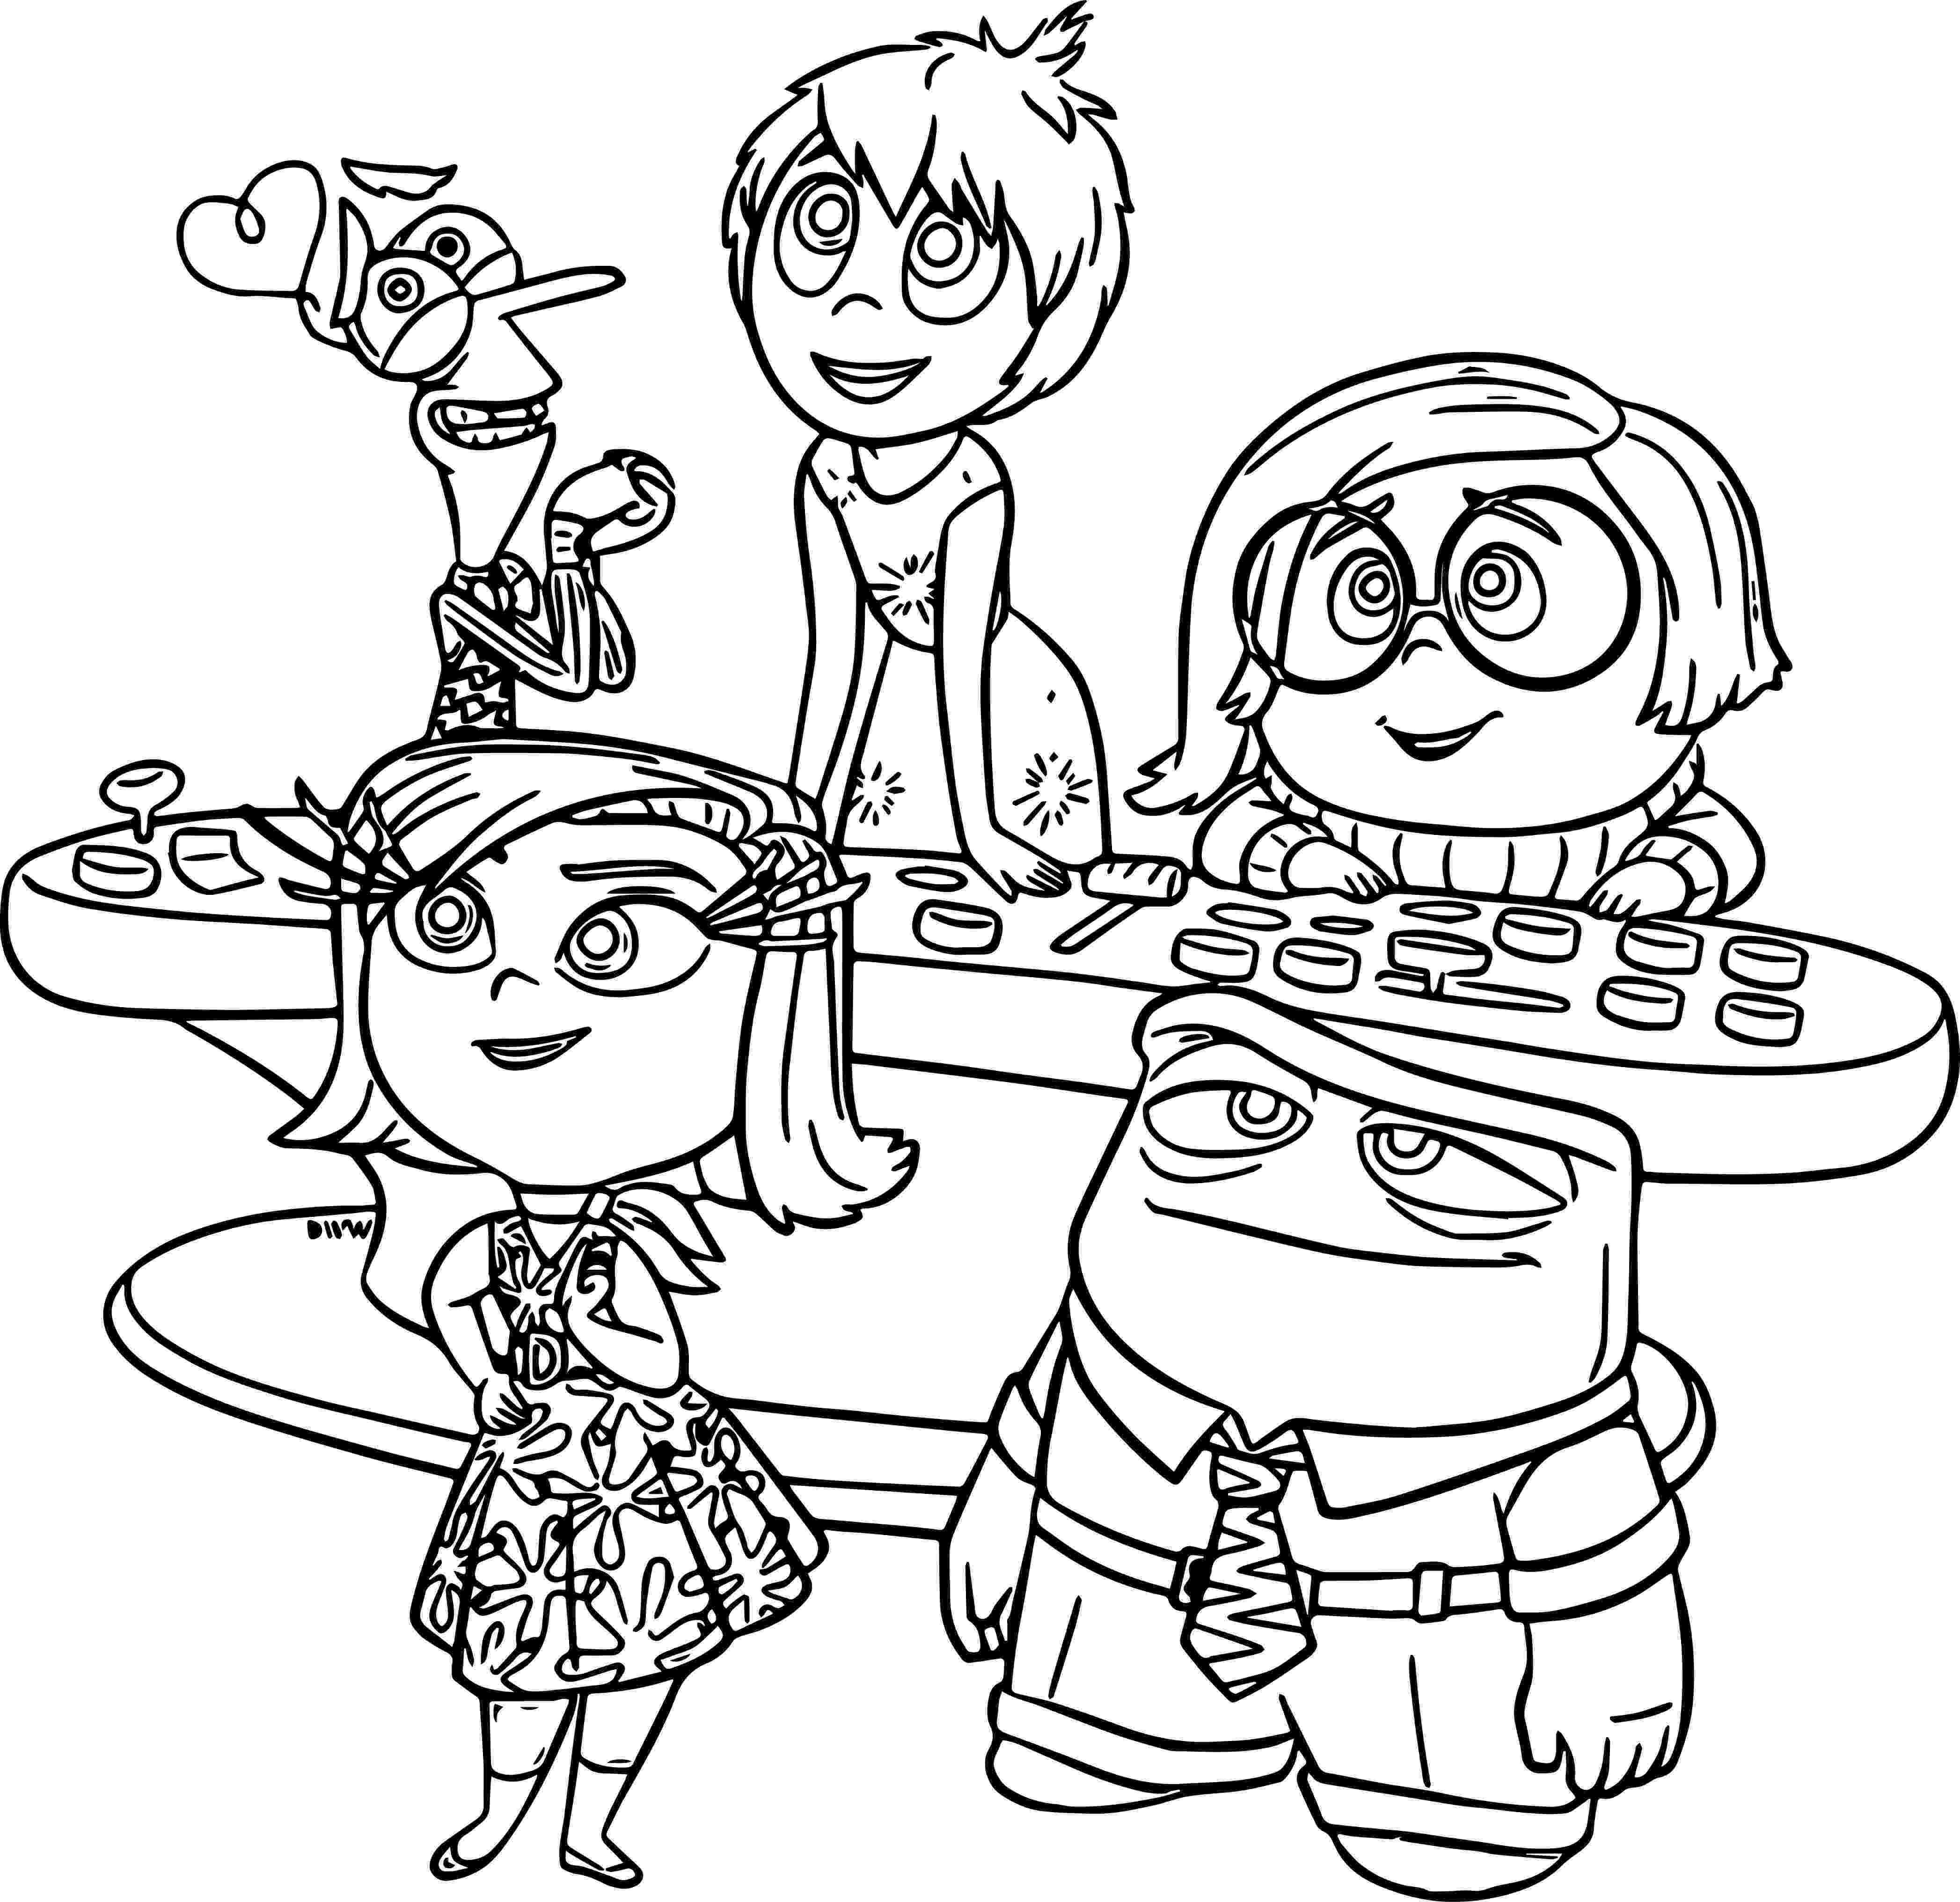 inside out coloring pages all characters inside out coloring pages best coloring pages for kids all inside out pages characters coloring